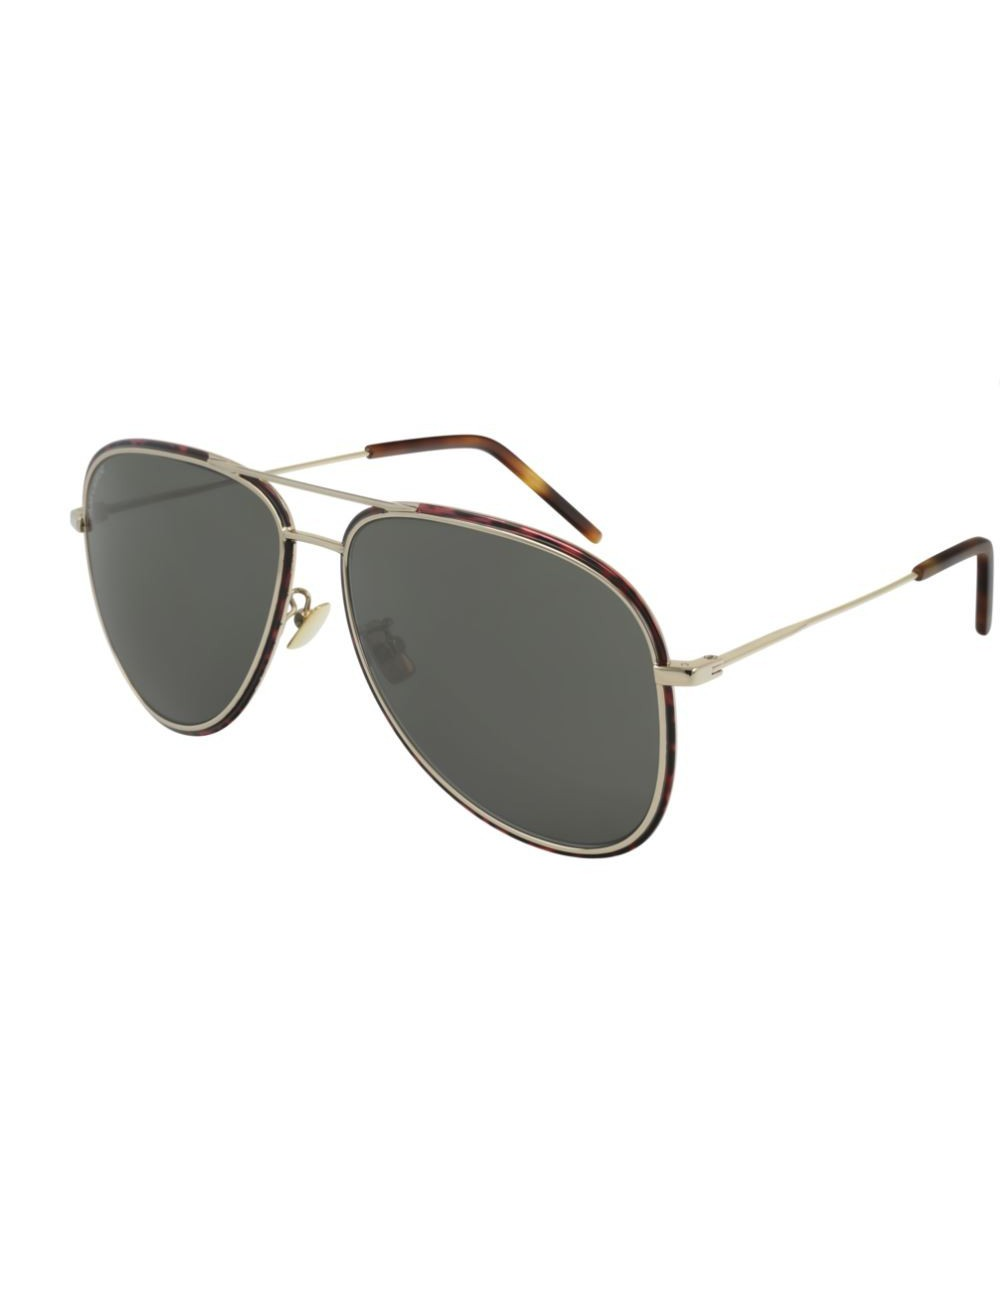 Lunettes de soleil Saint Laurent New Wave SL 294/F | Revendeur Agréé Saint Laurent | product_reduce_price